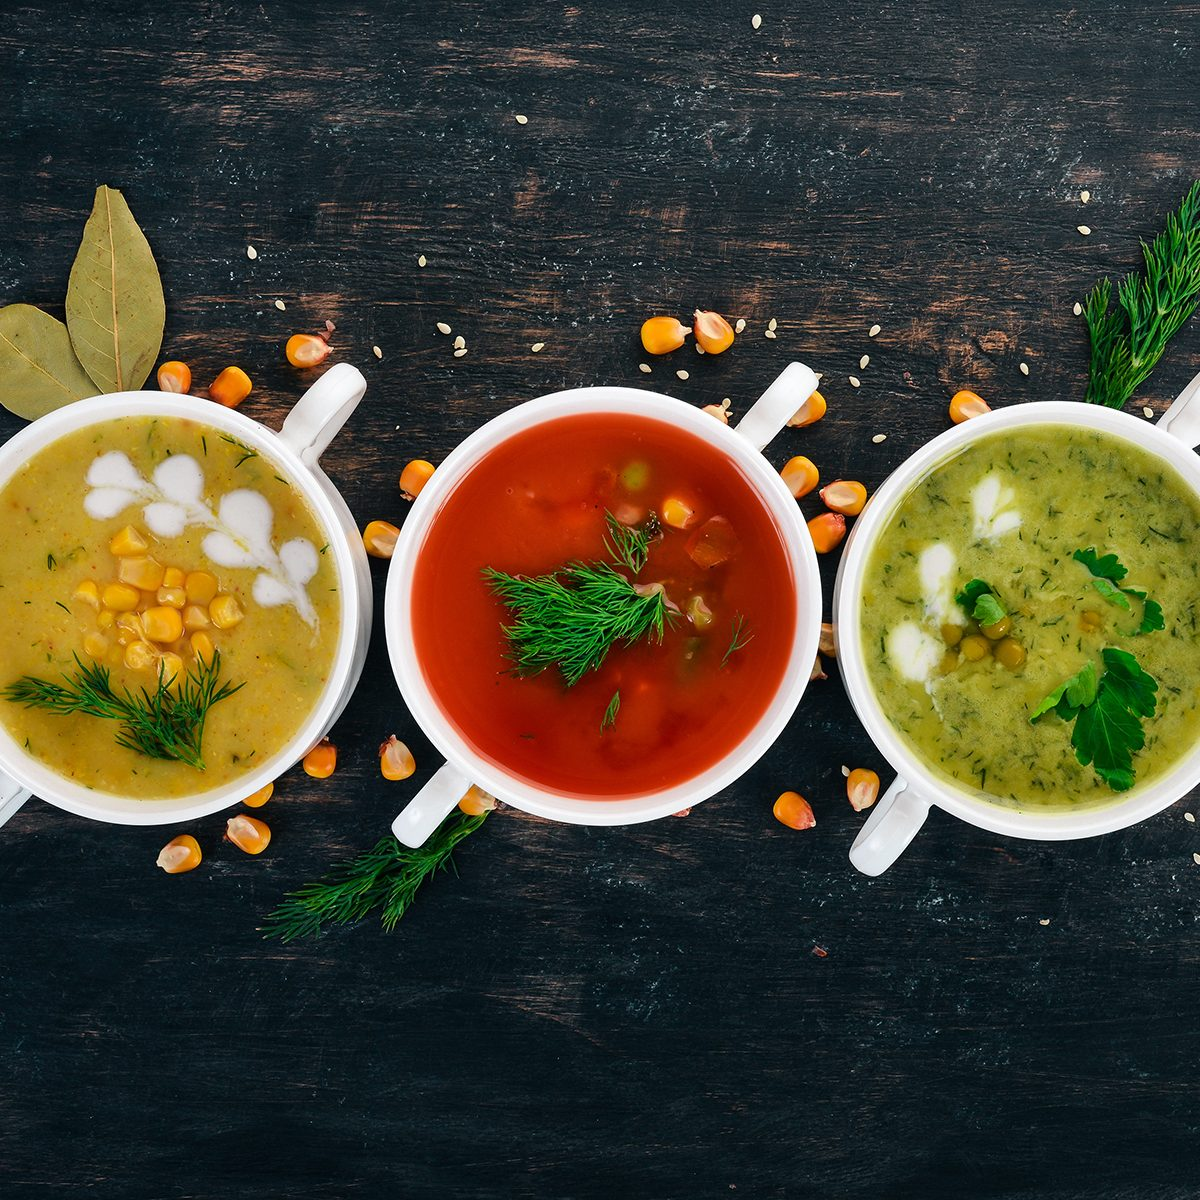 Set of hot, colored vegetable soups. Broccoli soup, corn, tomato soup.